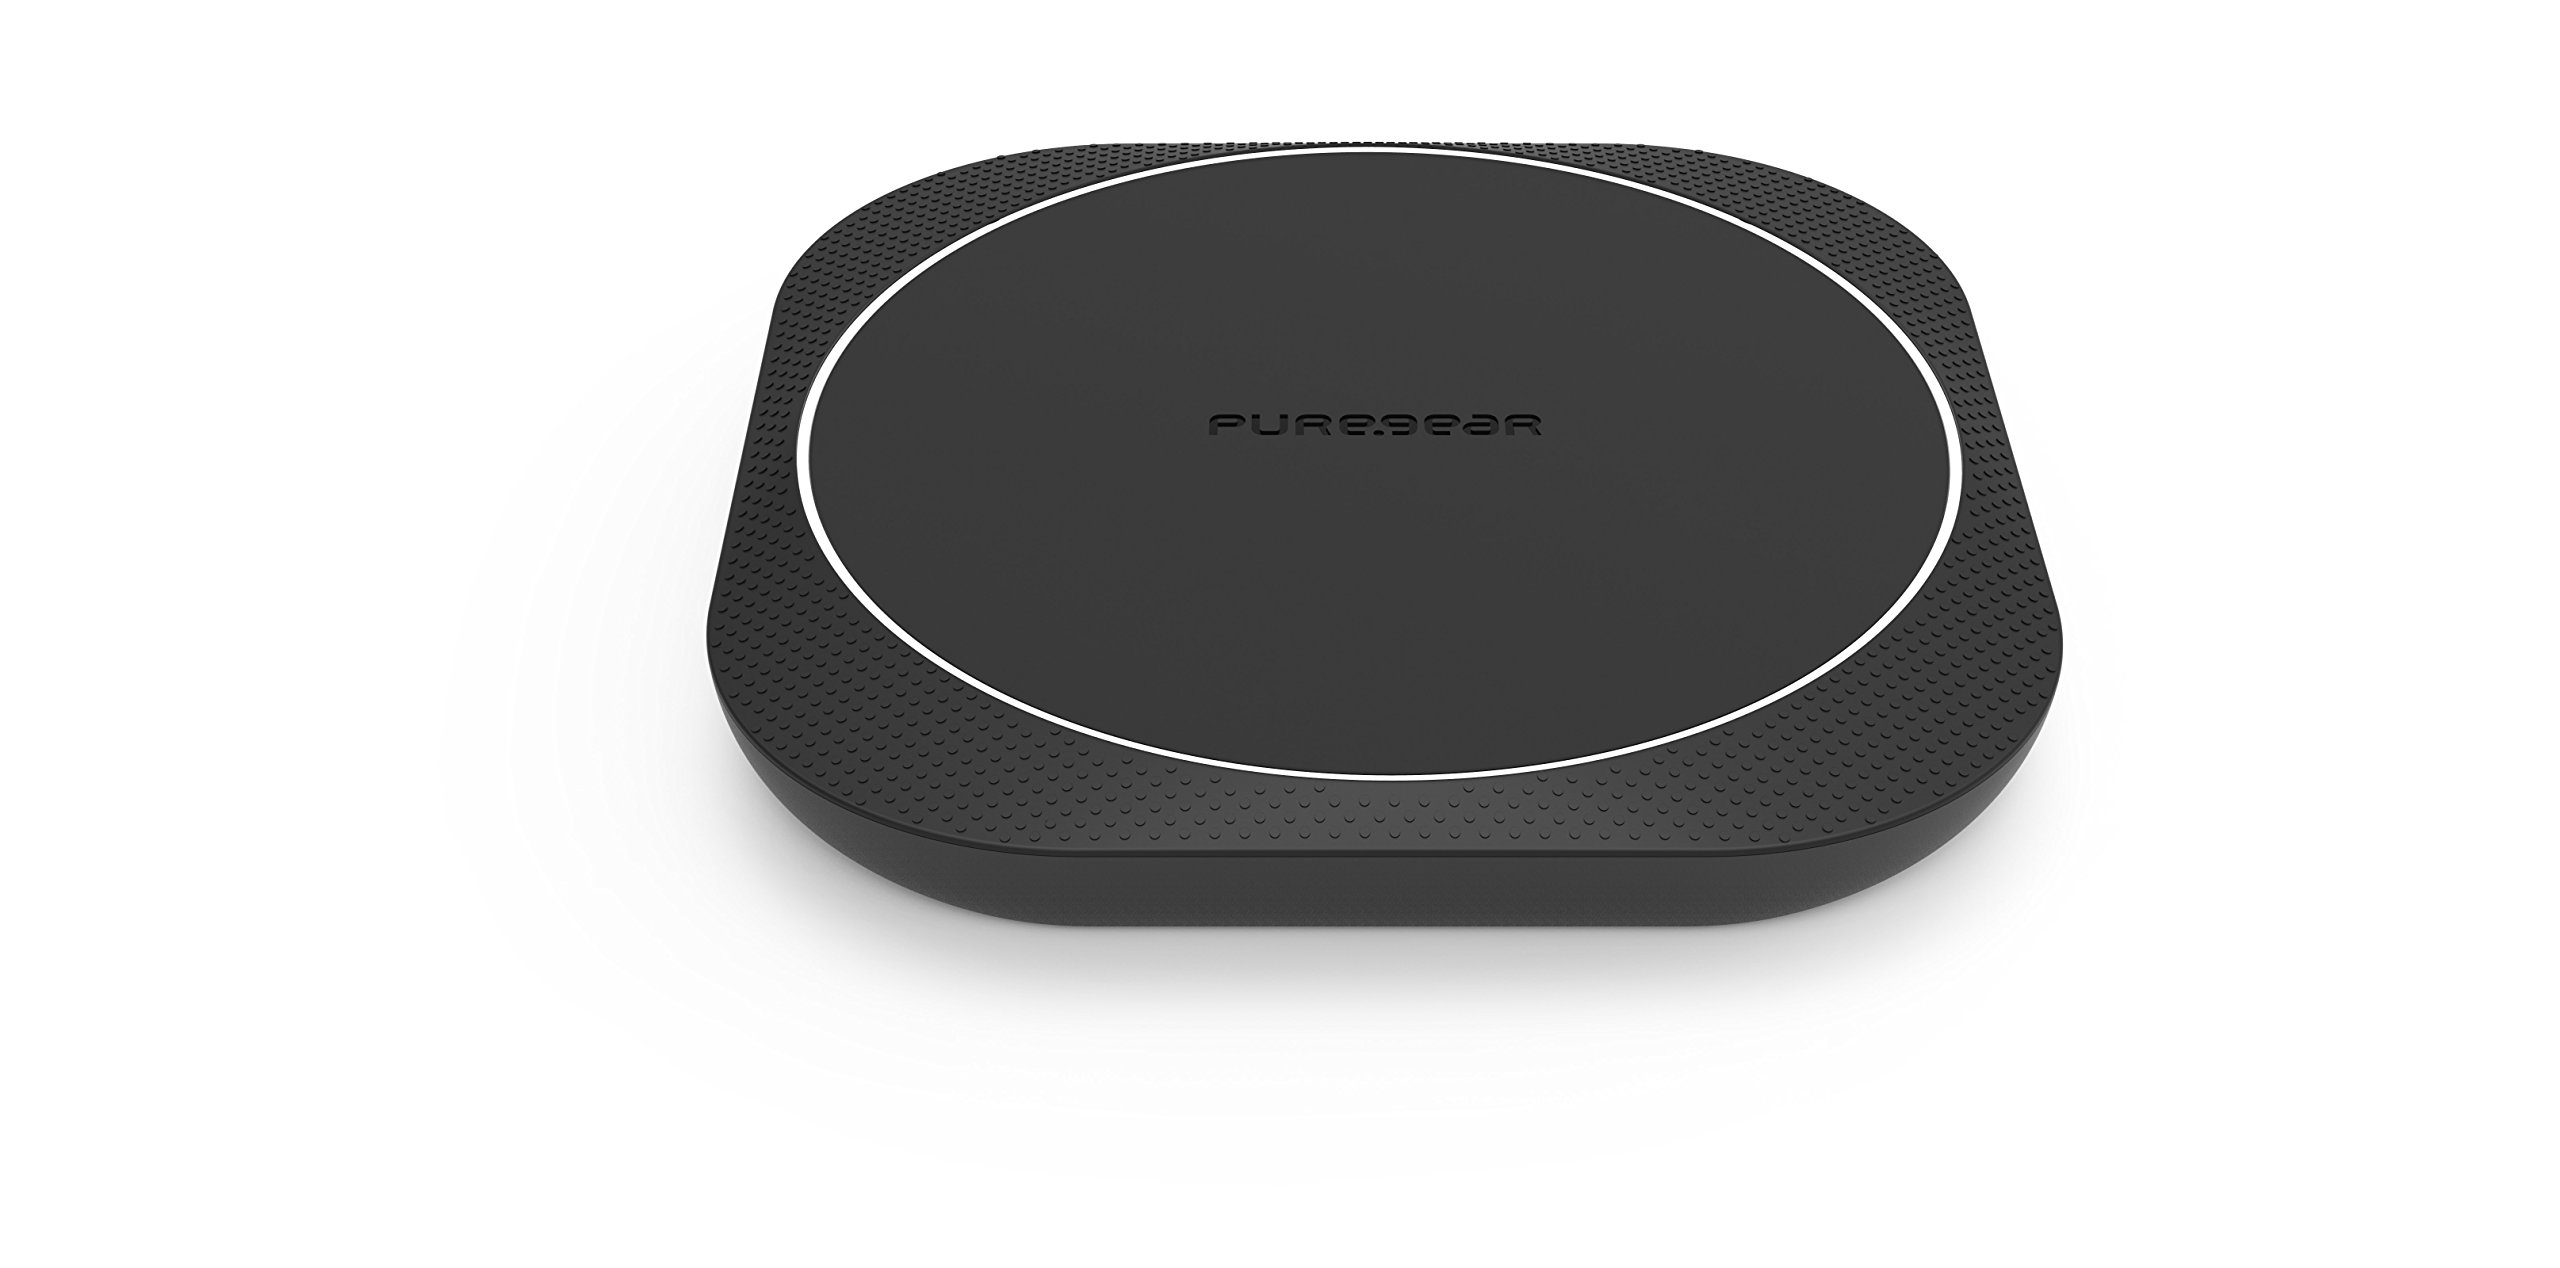 PureGear 10W Wireless Charging Pad, Qi-Certified Wireless Charger + QC 3.0 Wall Charger Adapter + 5ft Micro USB Cable